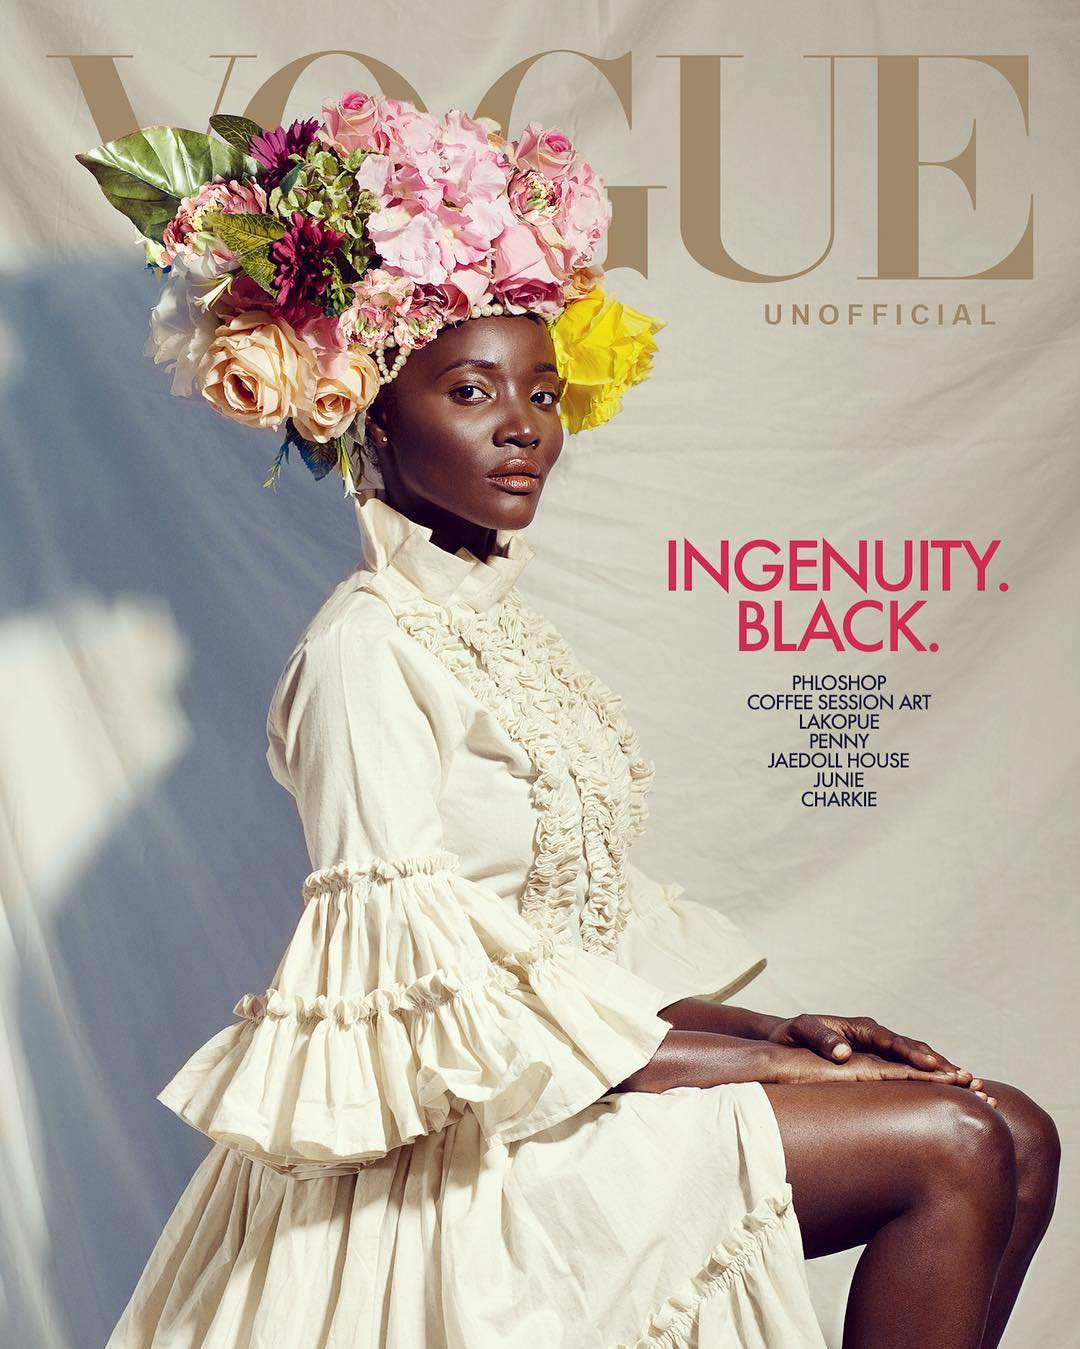 pholoshop recreated Vogue agazine covers